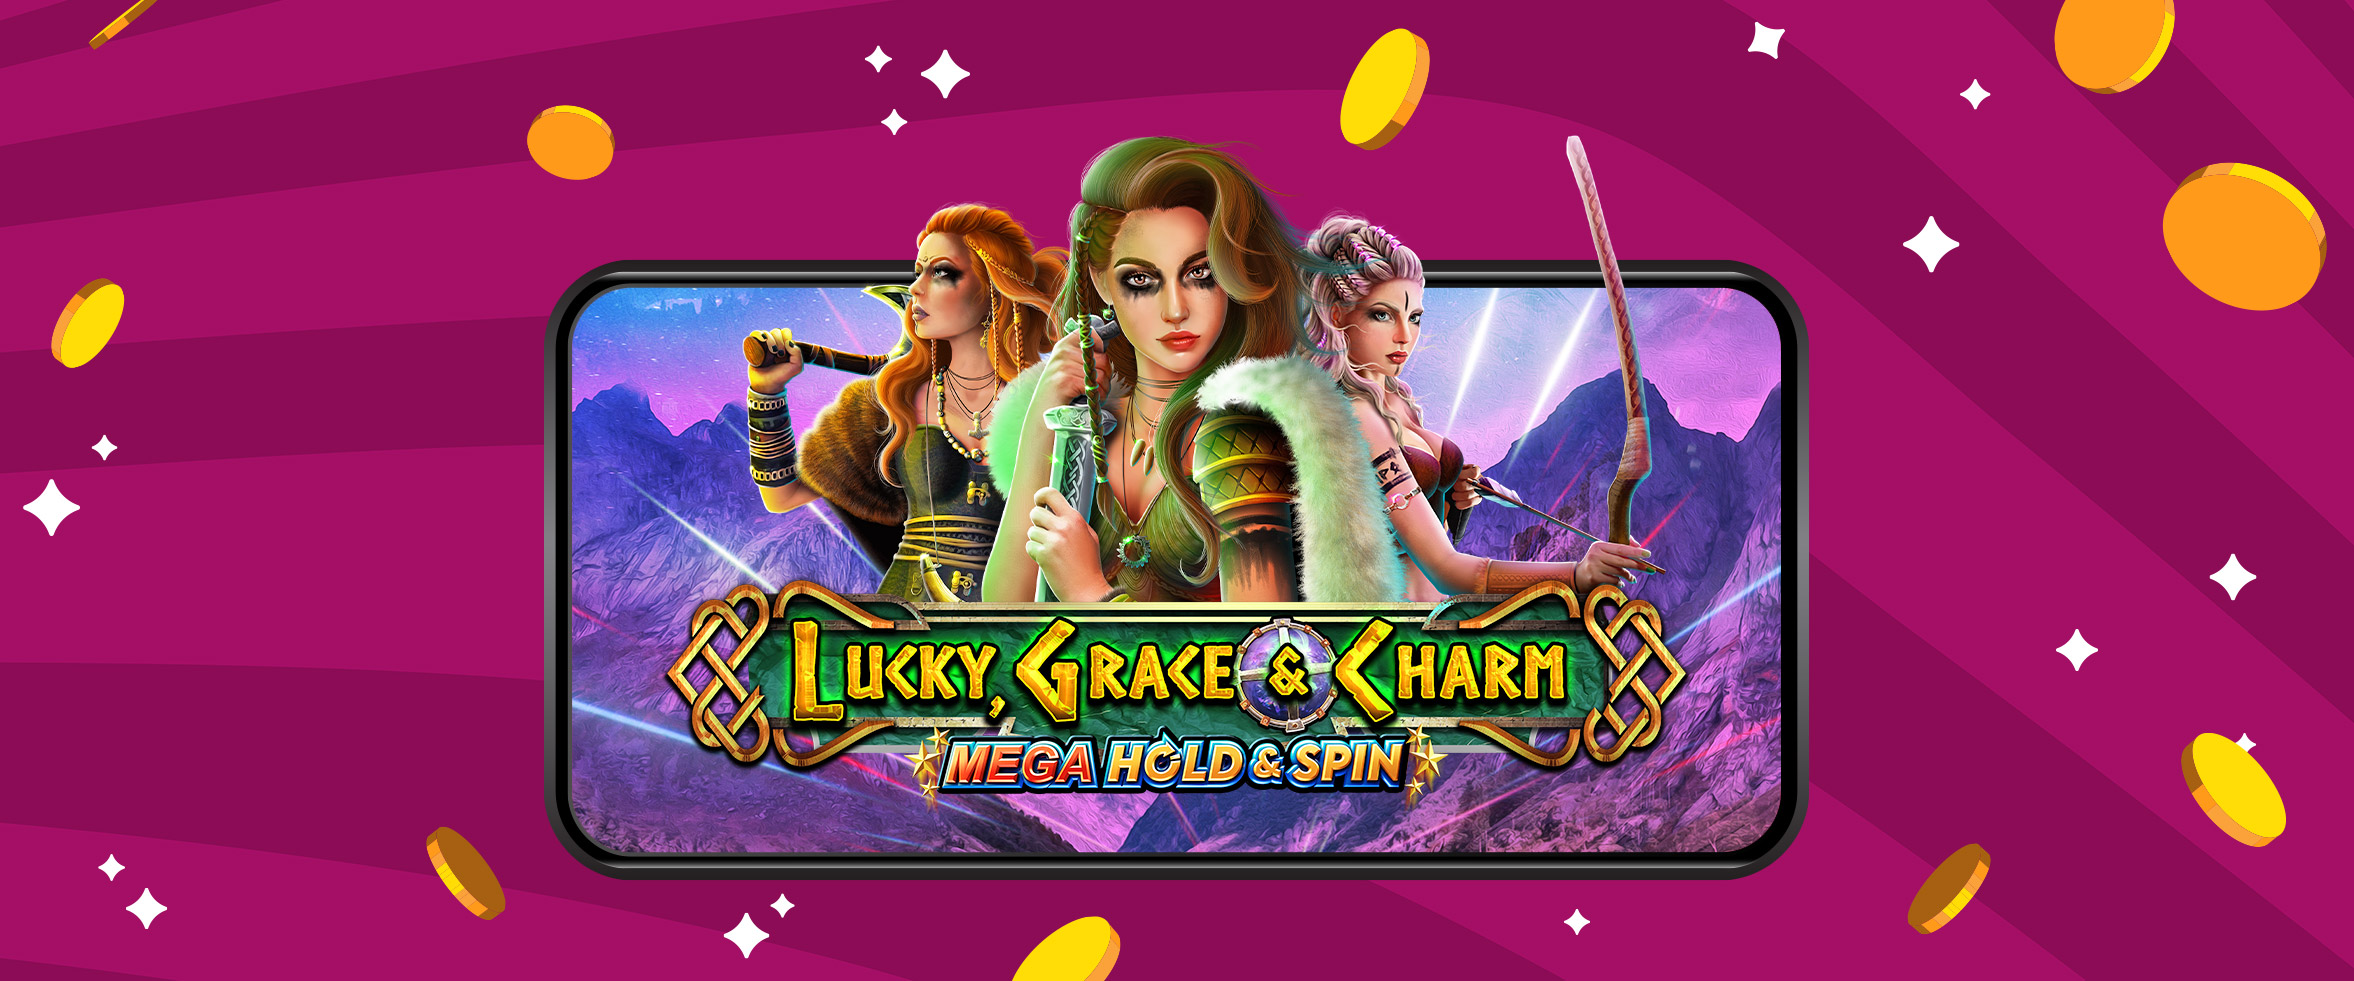 Exclusive Game with 100 Free Spins